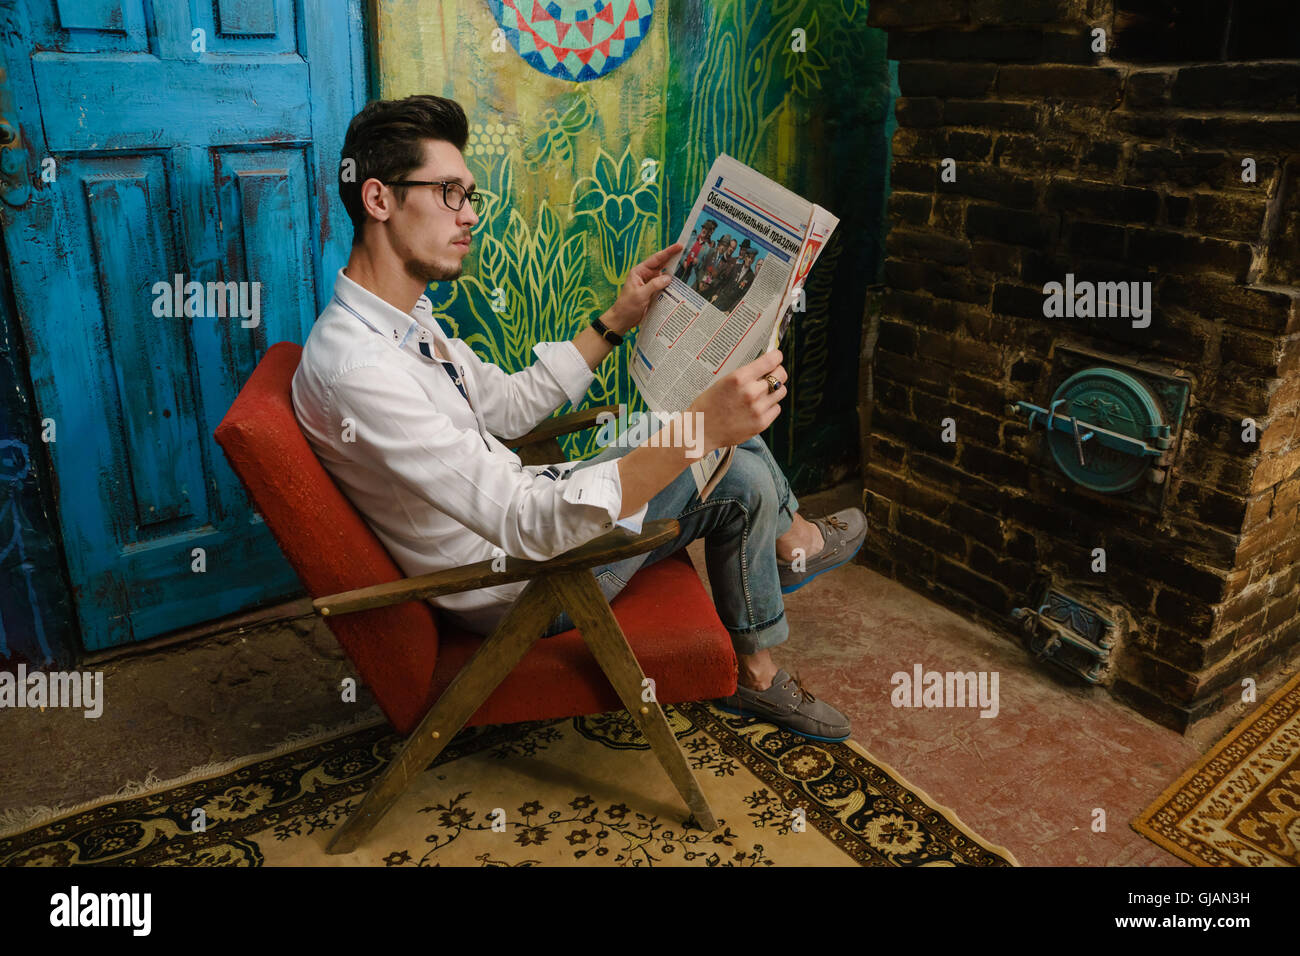 thoughtful reading of young man on the old armchair beside unusual wall - Stock Image